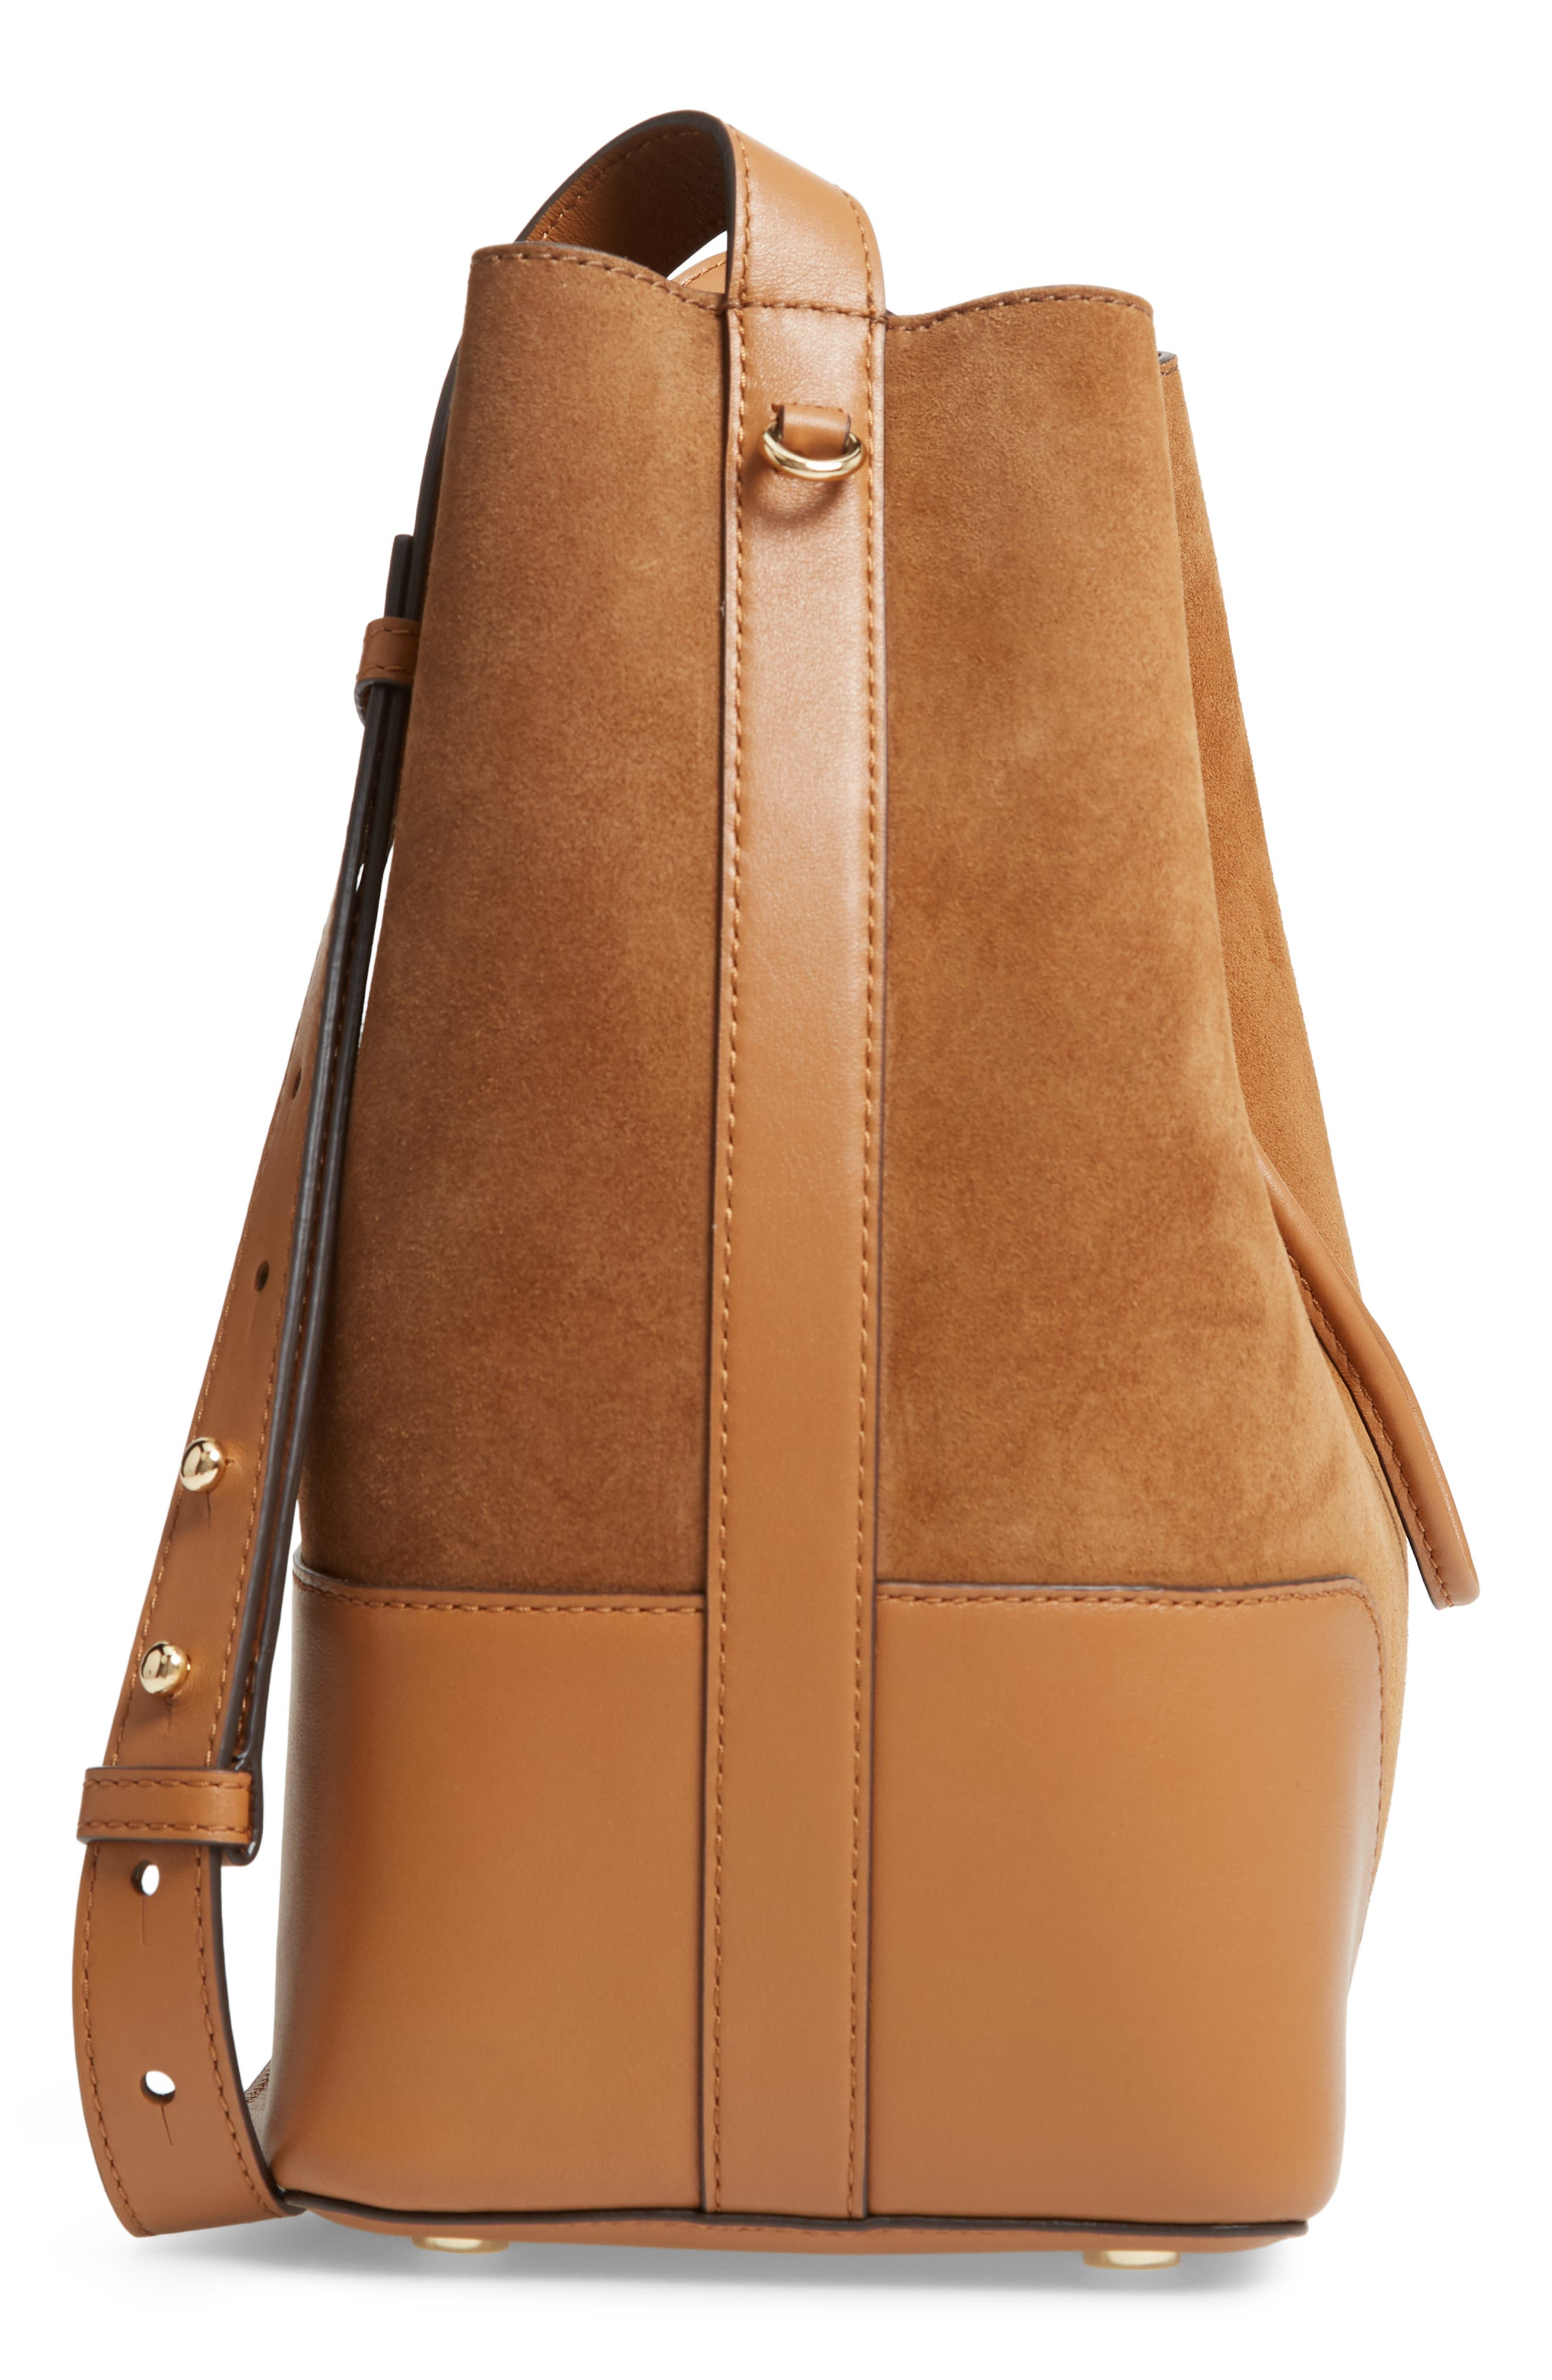 Cary Leather & Suede Bucket Bag,                             Alternate thumbnail 5, color,